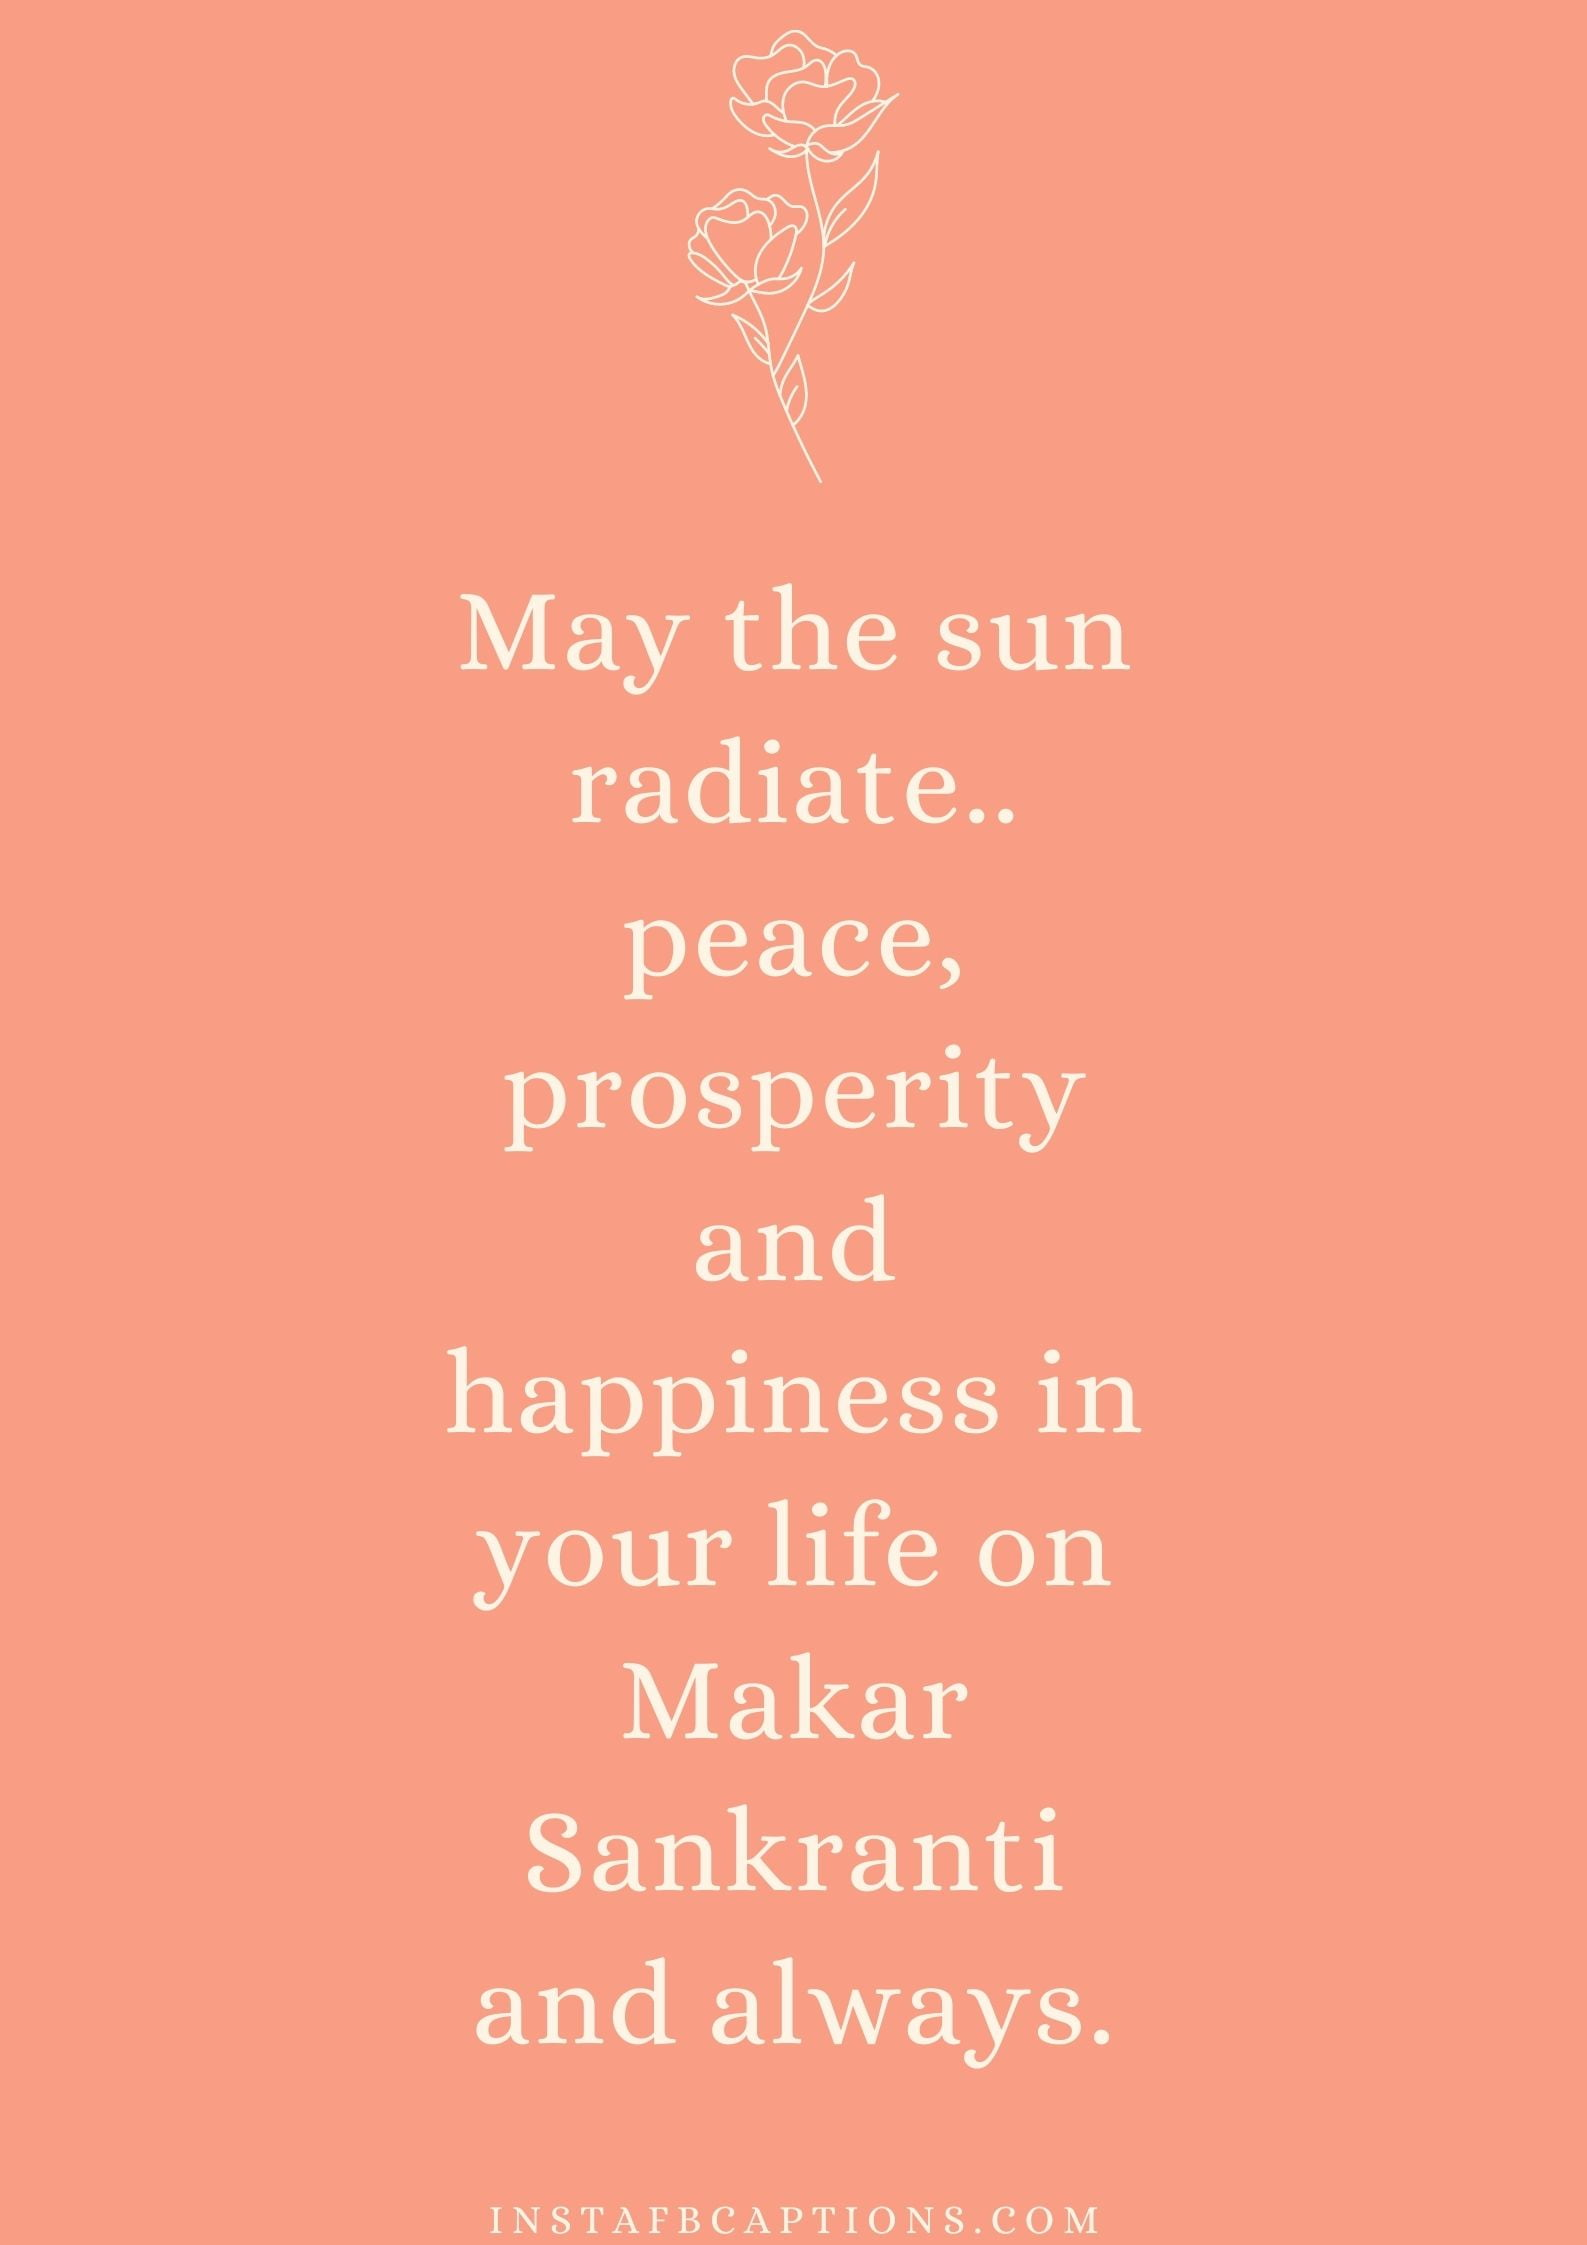 Makar Sankranti 2021 Wishes  - Makar Sankranti 2021 Wishes - MAKAR SANKRANTI Instagram Captions and Quotes 2021